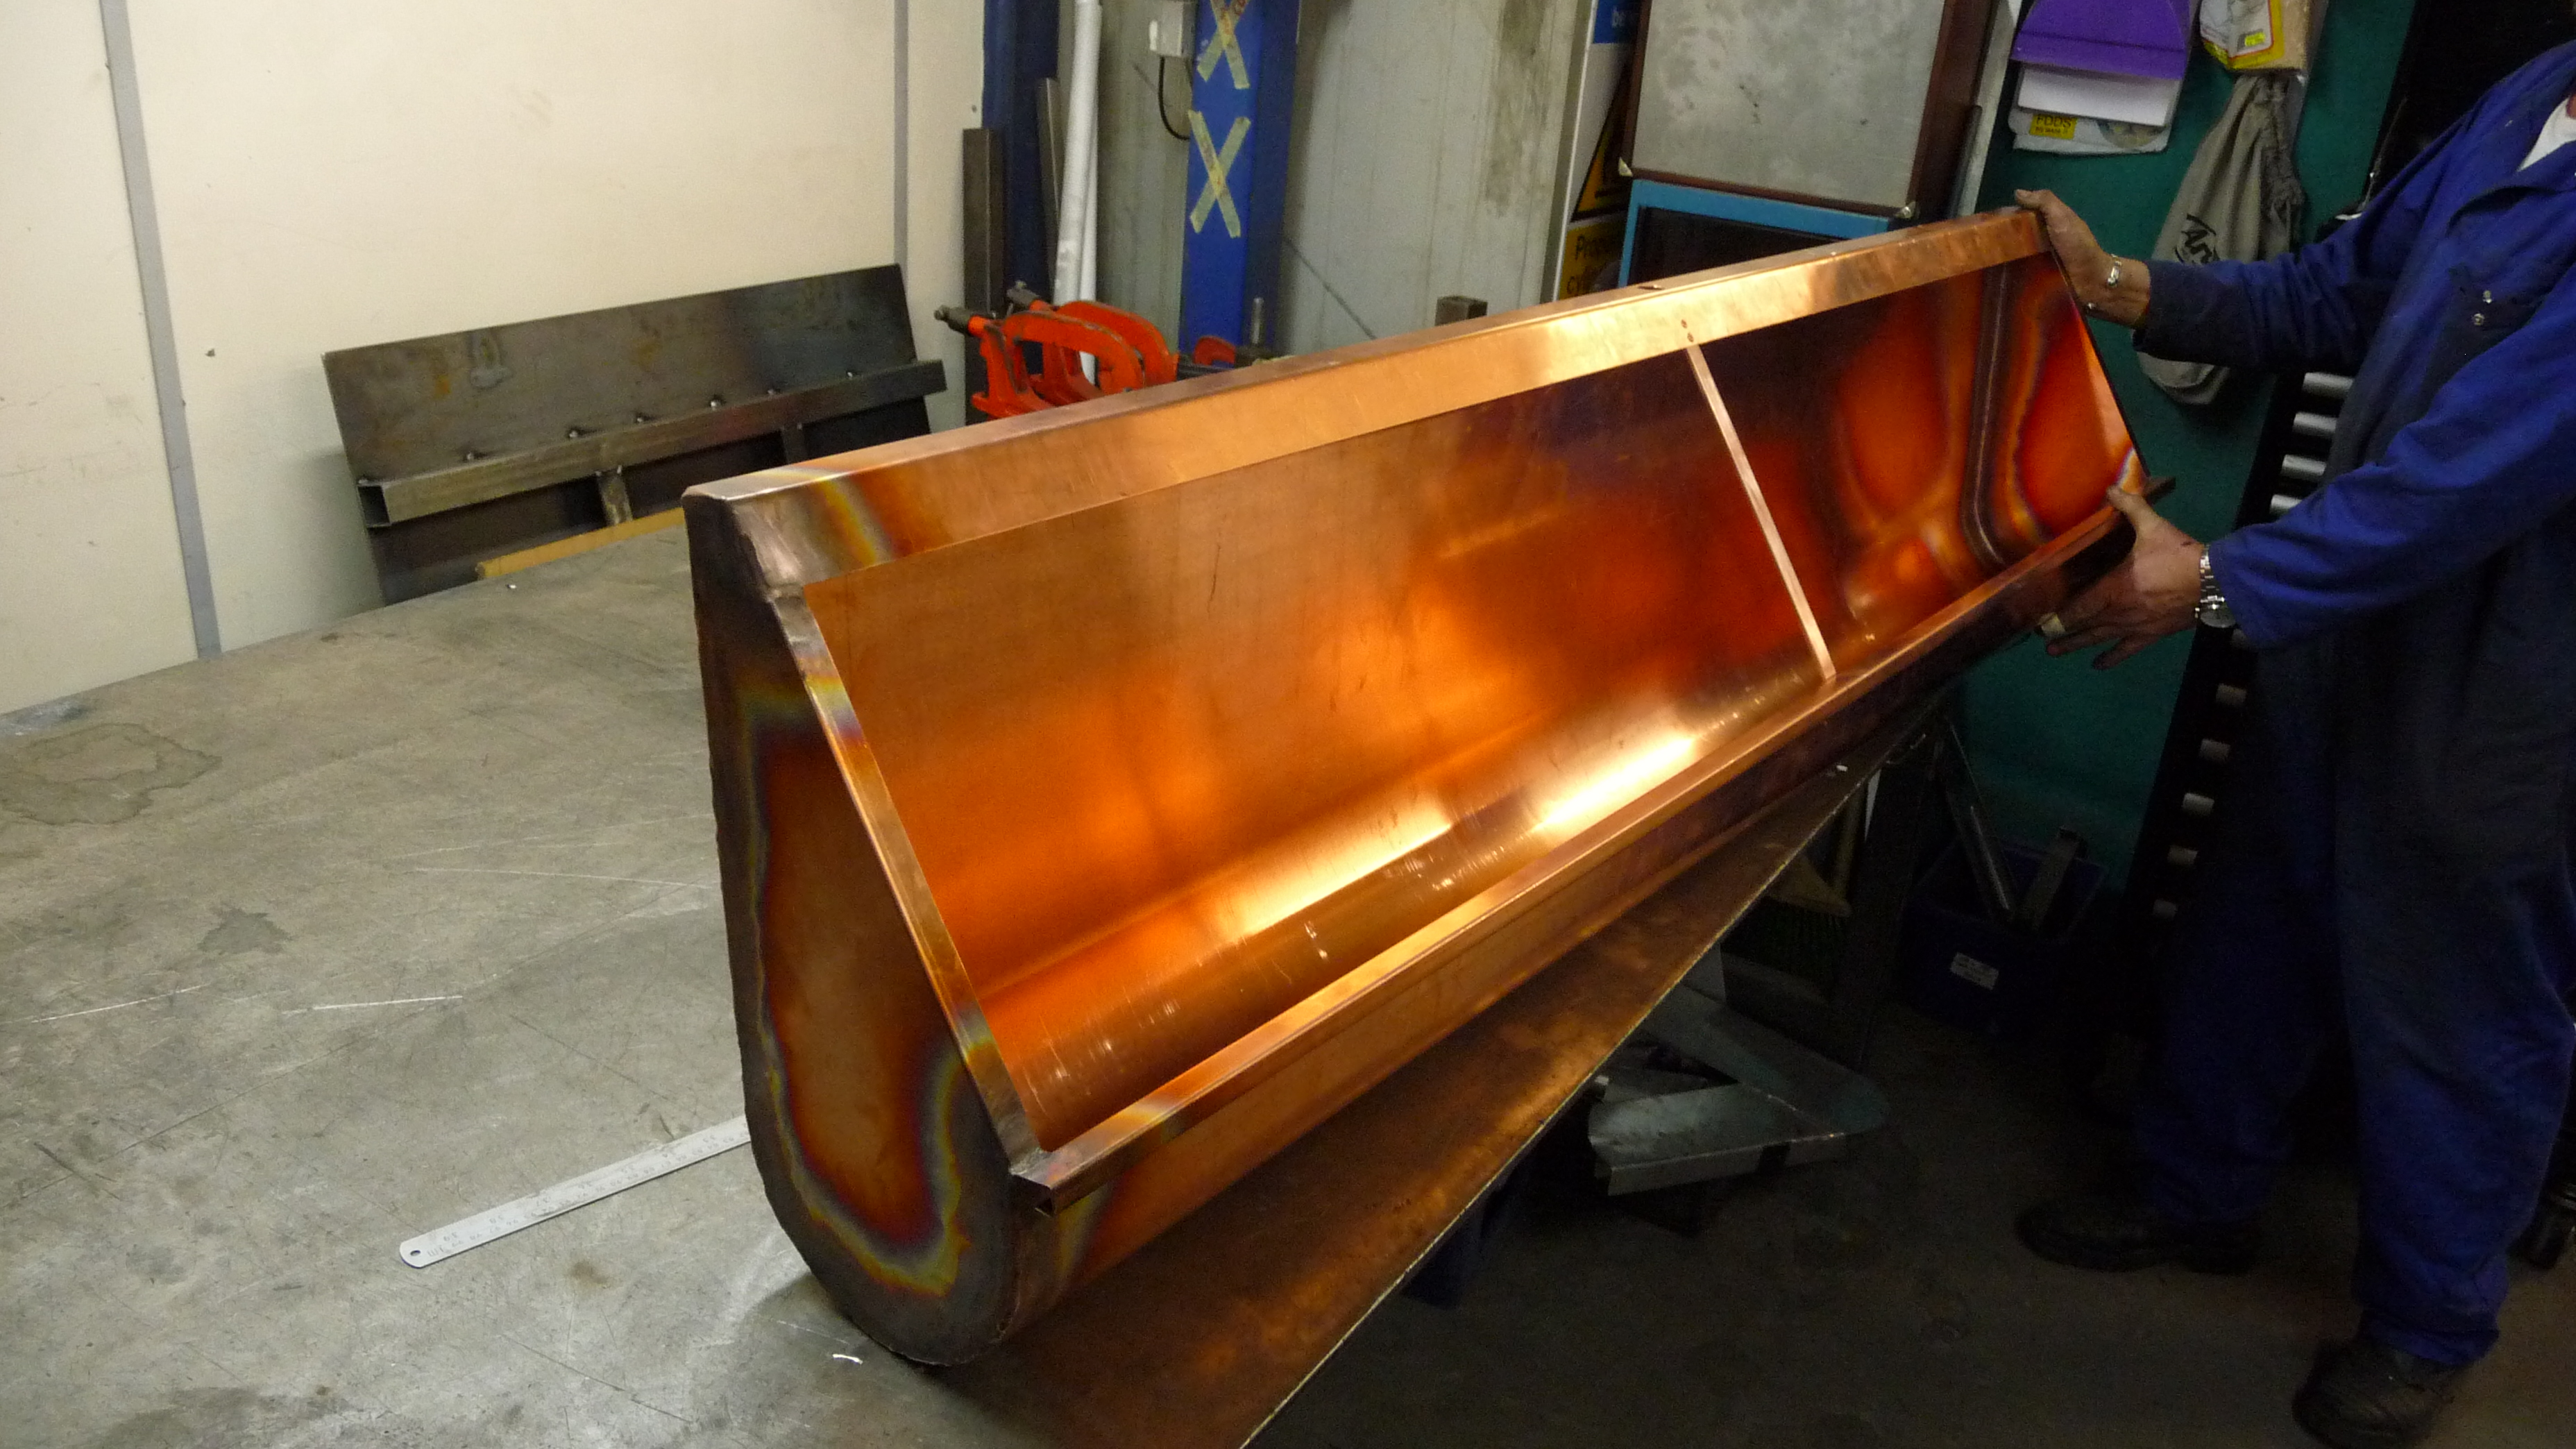 Bespoke copper urinal